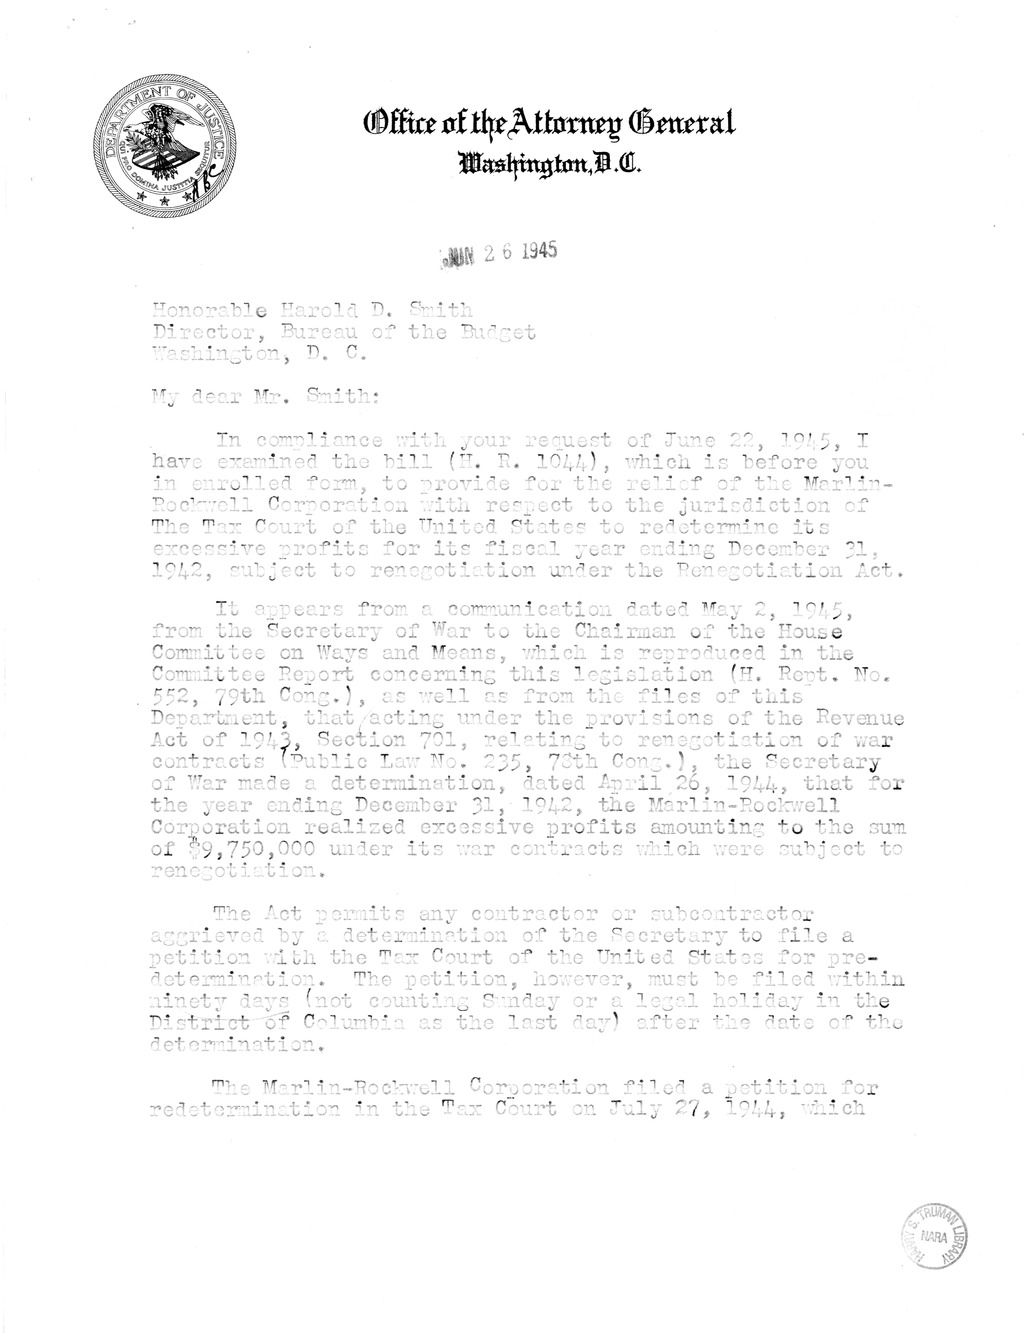 Memorandum from Harold D. Smith to M. C. Latta, H.R. 1044, For the Relief of Marlin-Rockwell Corporation, with Attachments